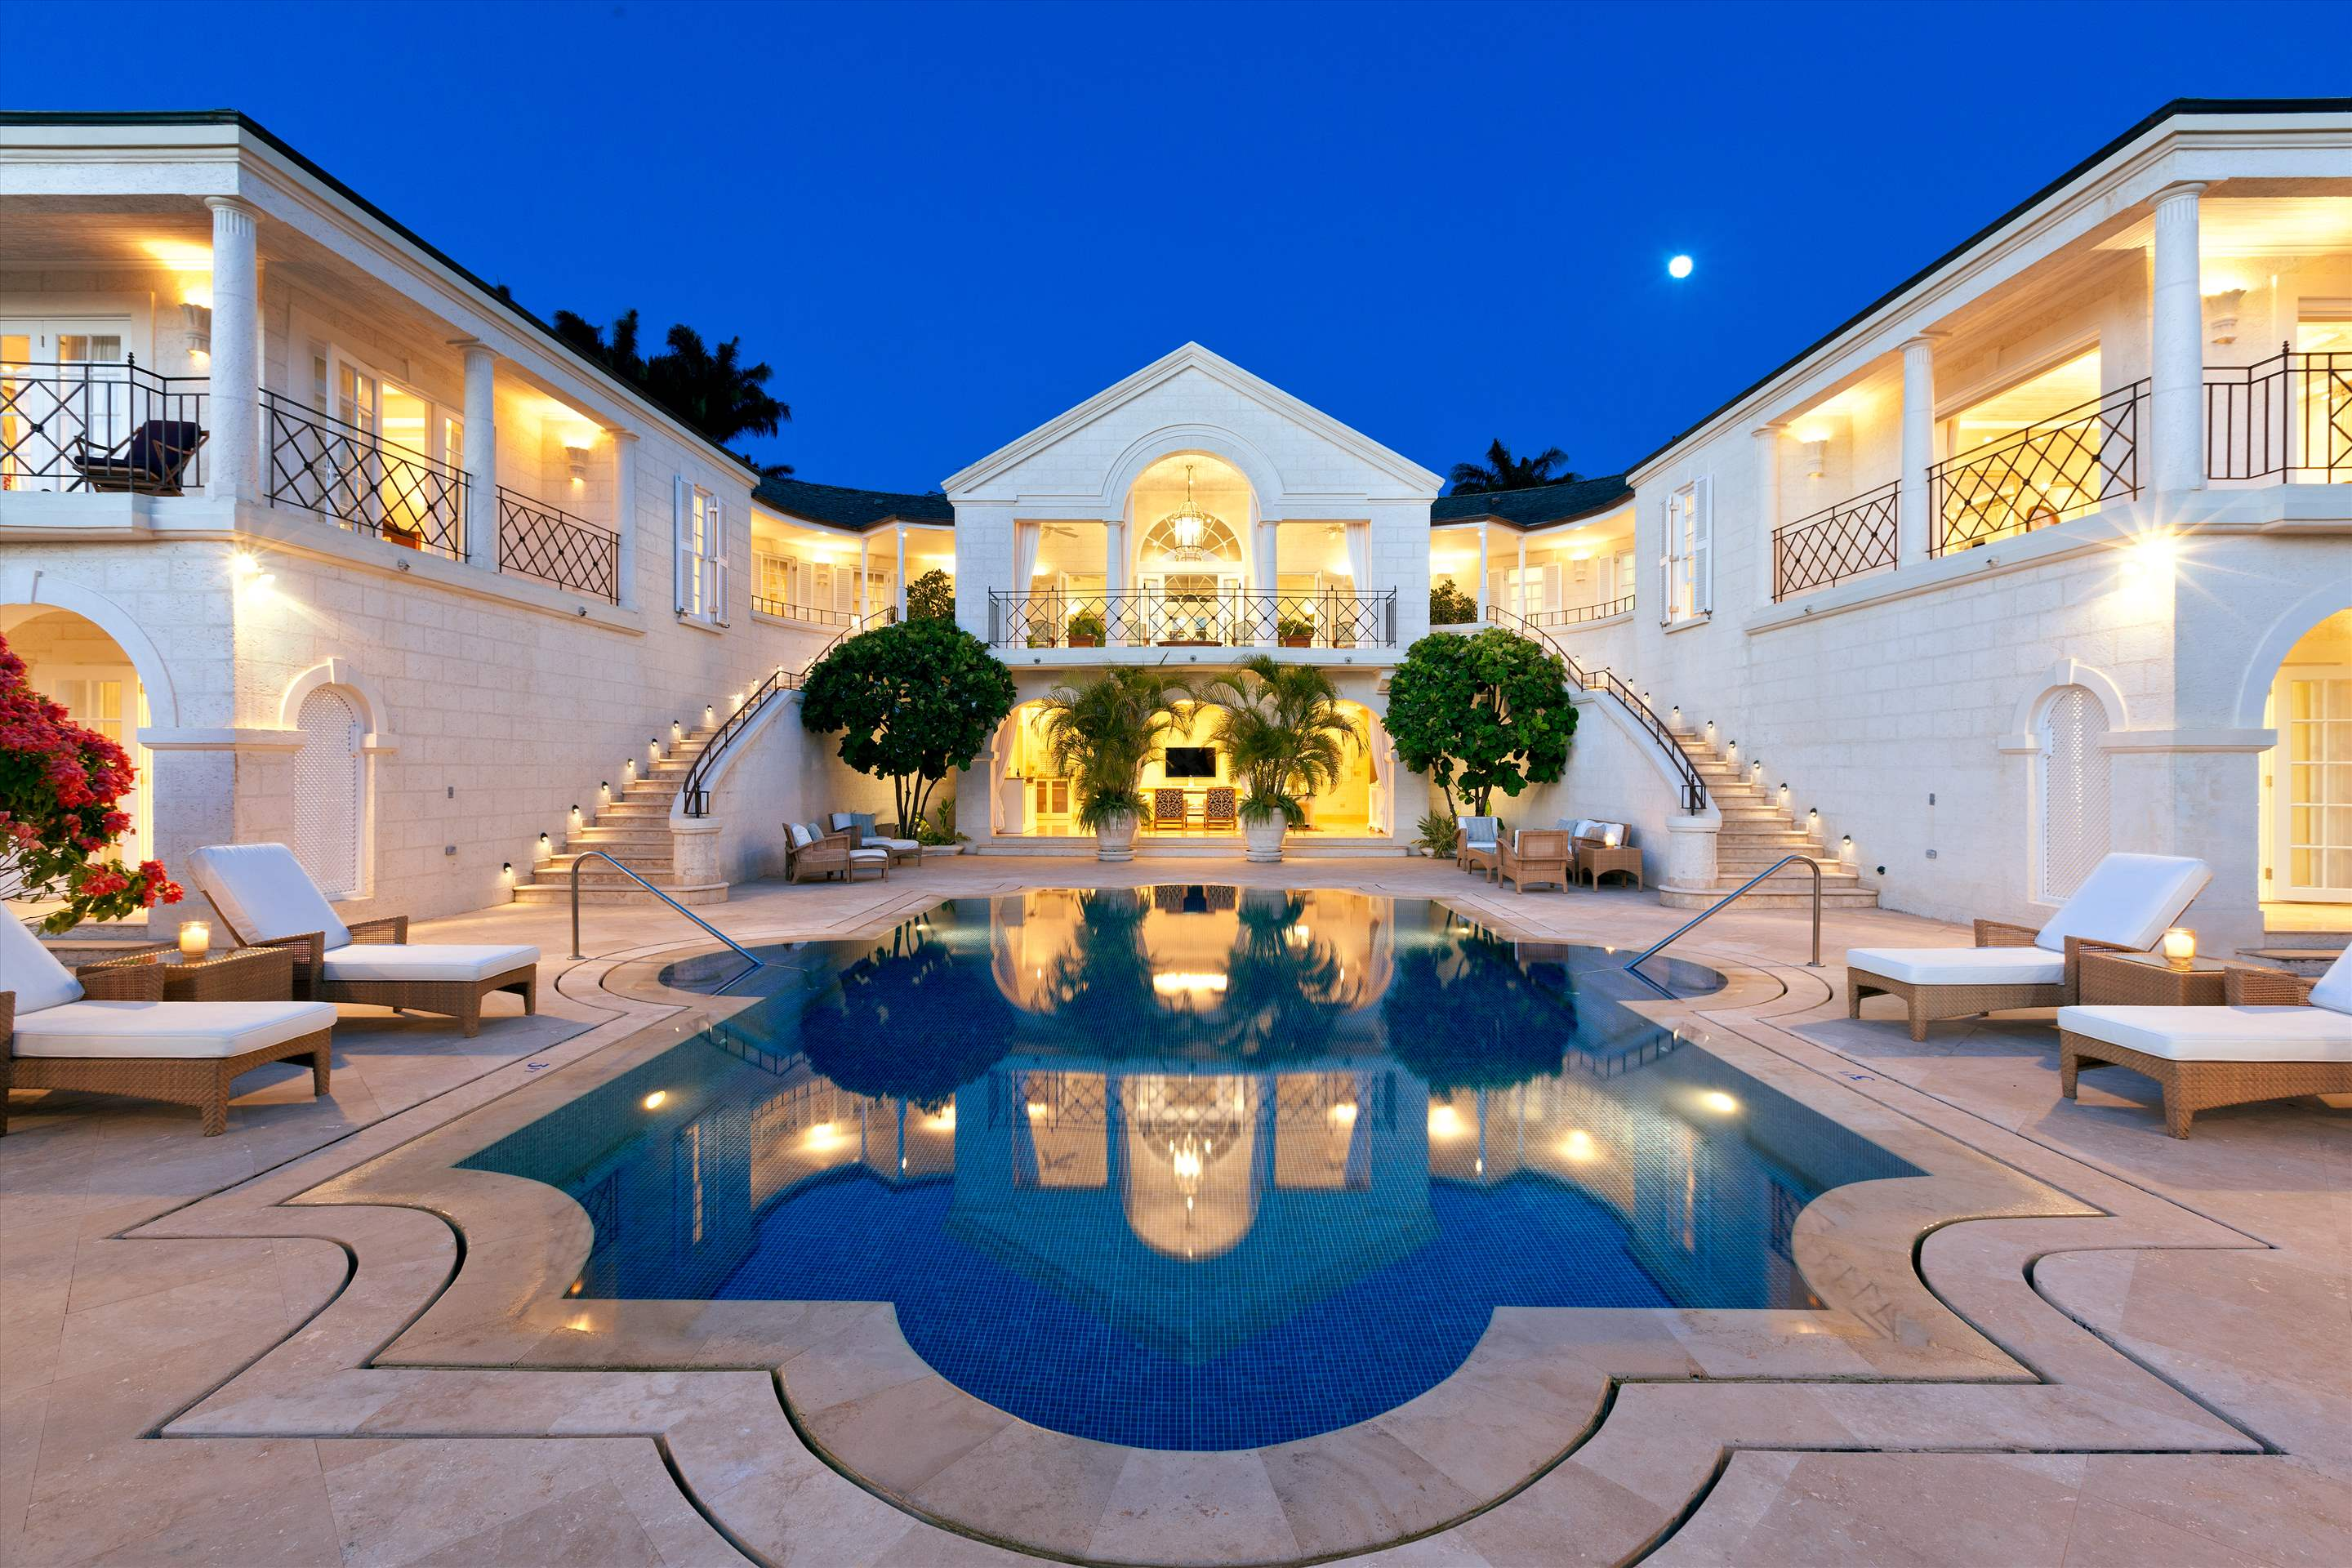 Illusion, Four Bedroom Rate, 4 bedroom villa in St. James & West Coast, Barbados Photo #1